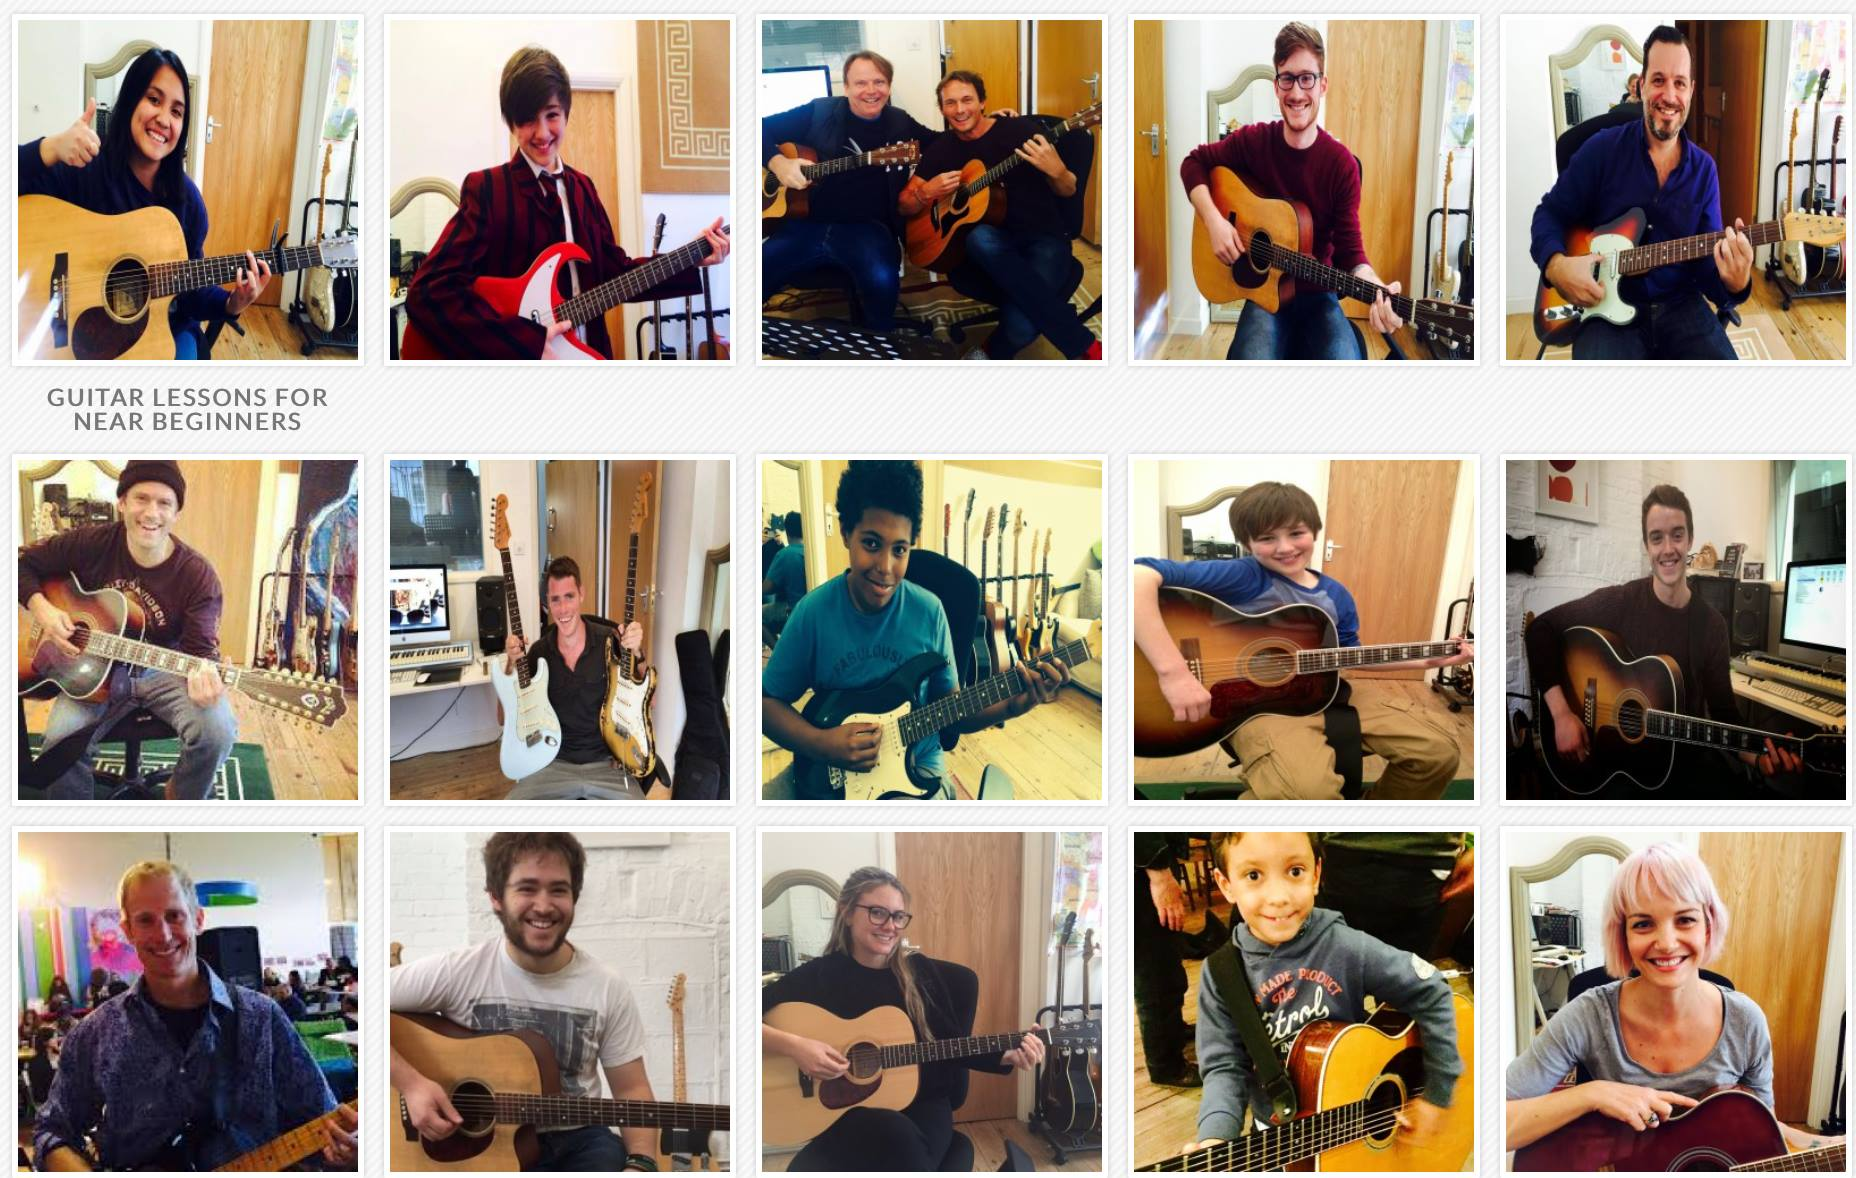 Children's guitar lessons Brighton Acoustic guitar lessons Learn to play guitar in Brighton